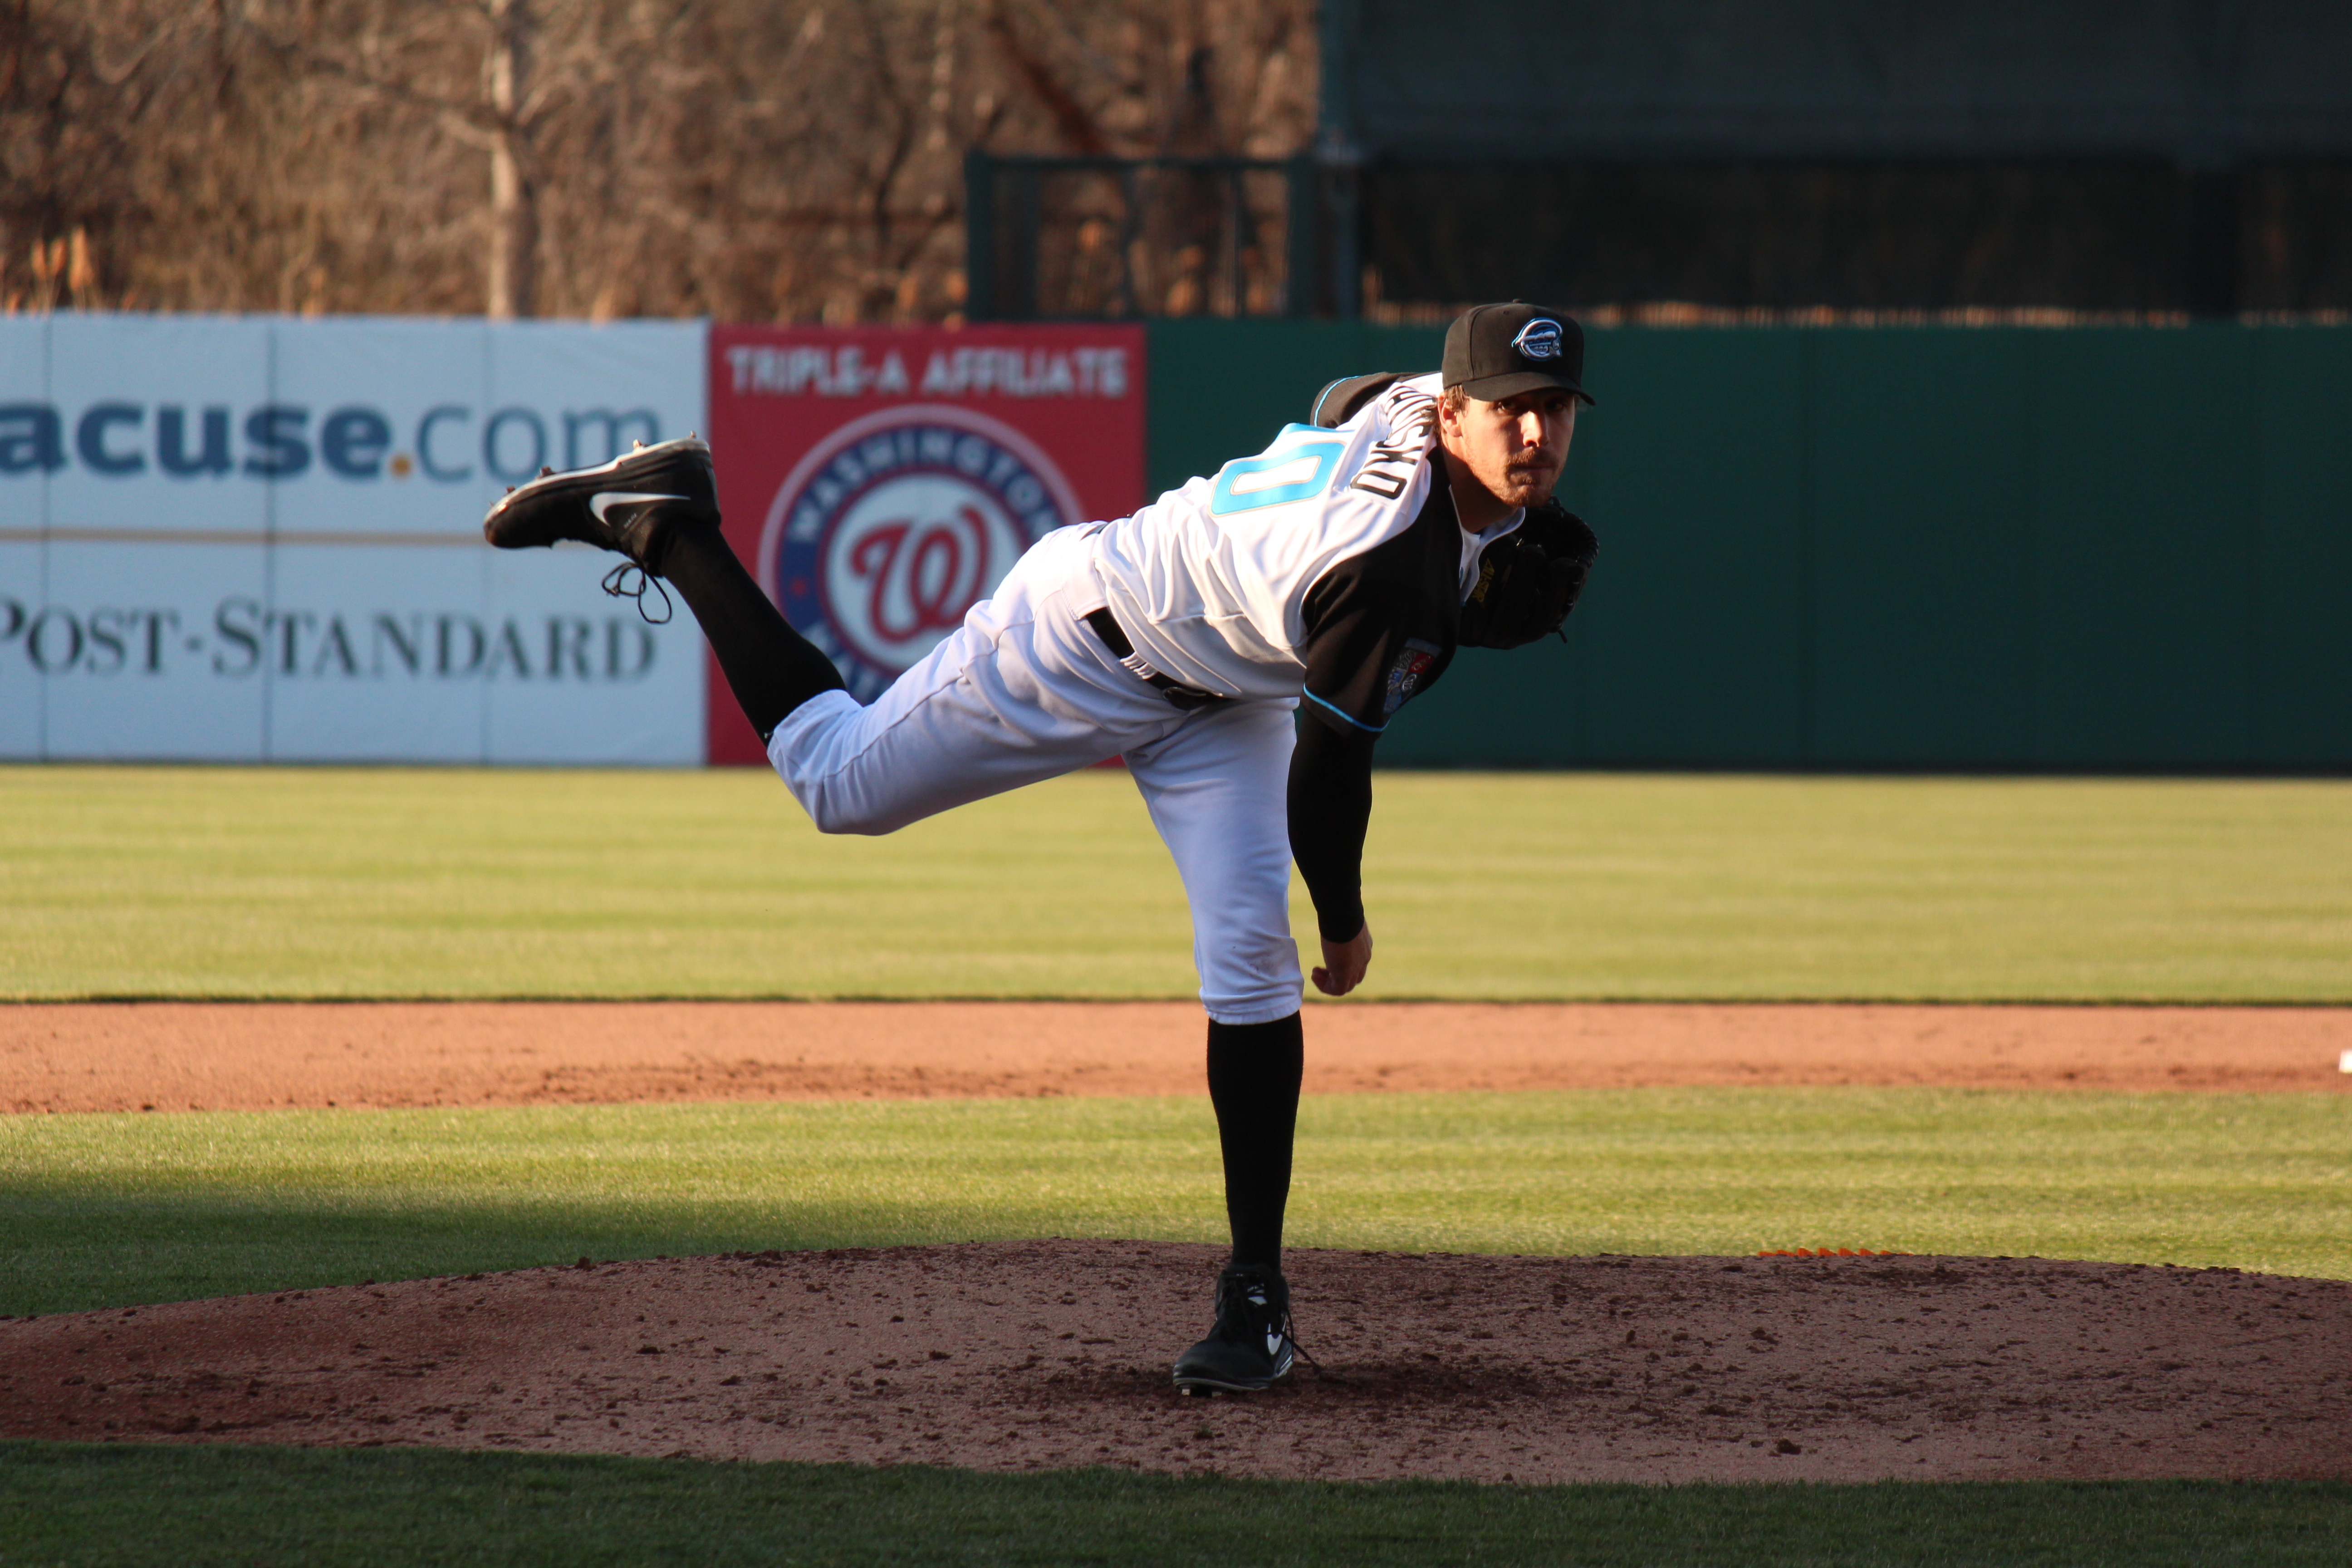 Chiefs Split Doubleheader Against IronPigs for First Series Win